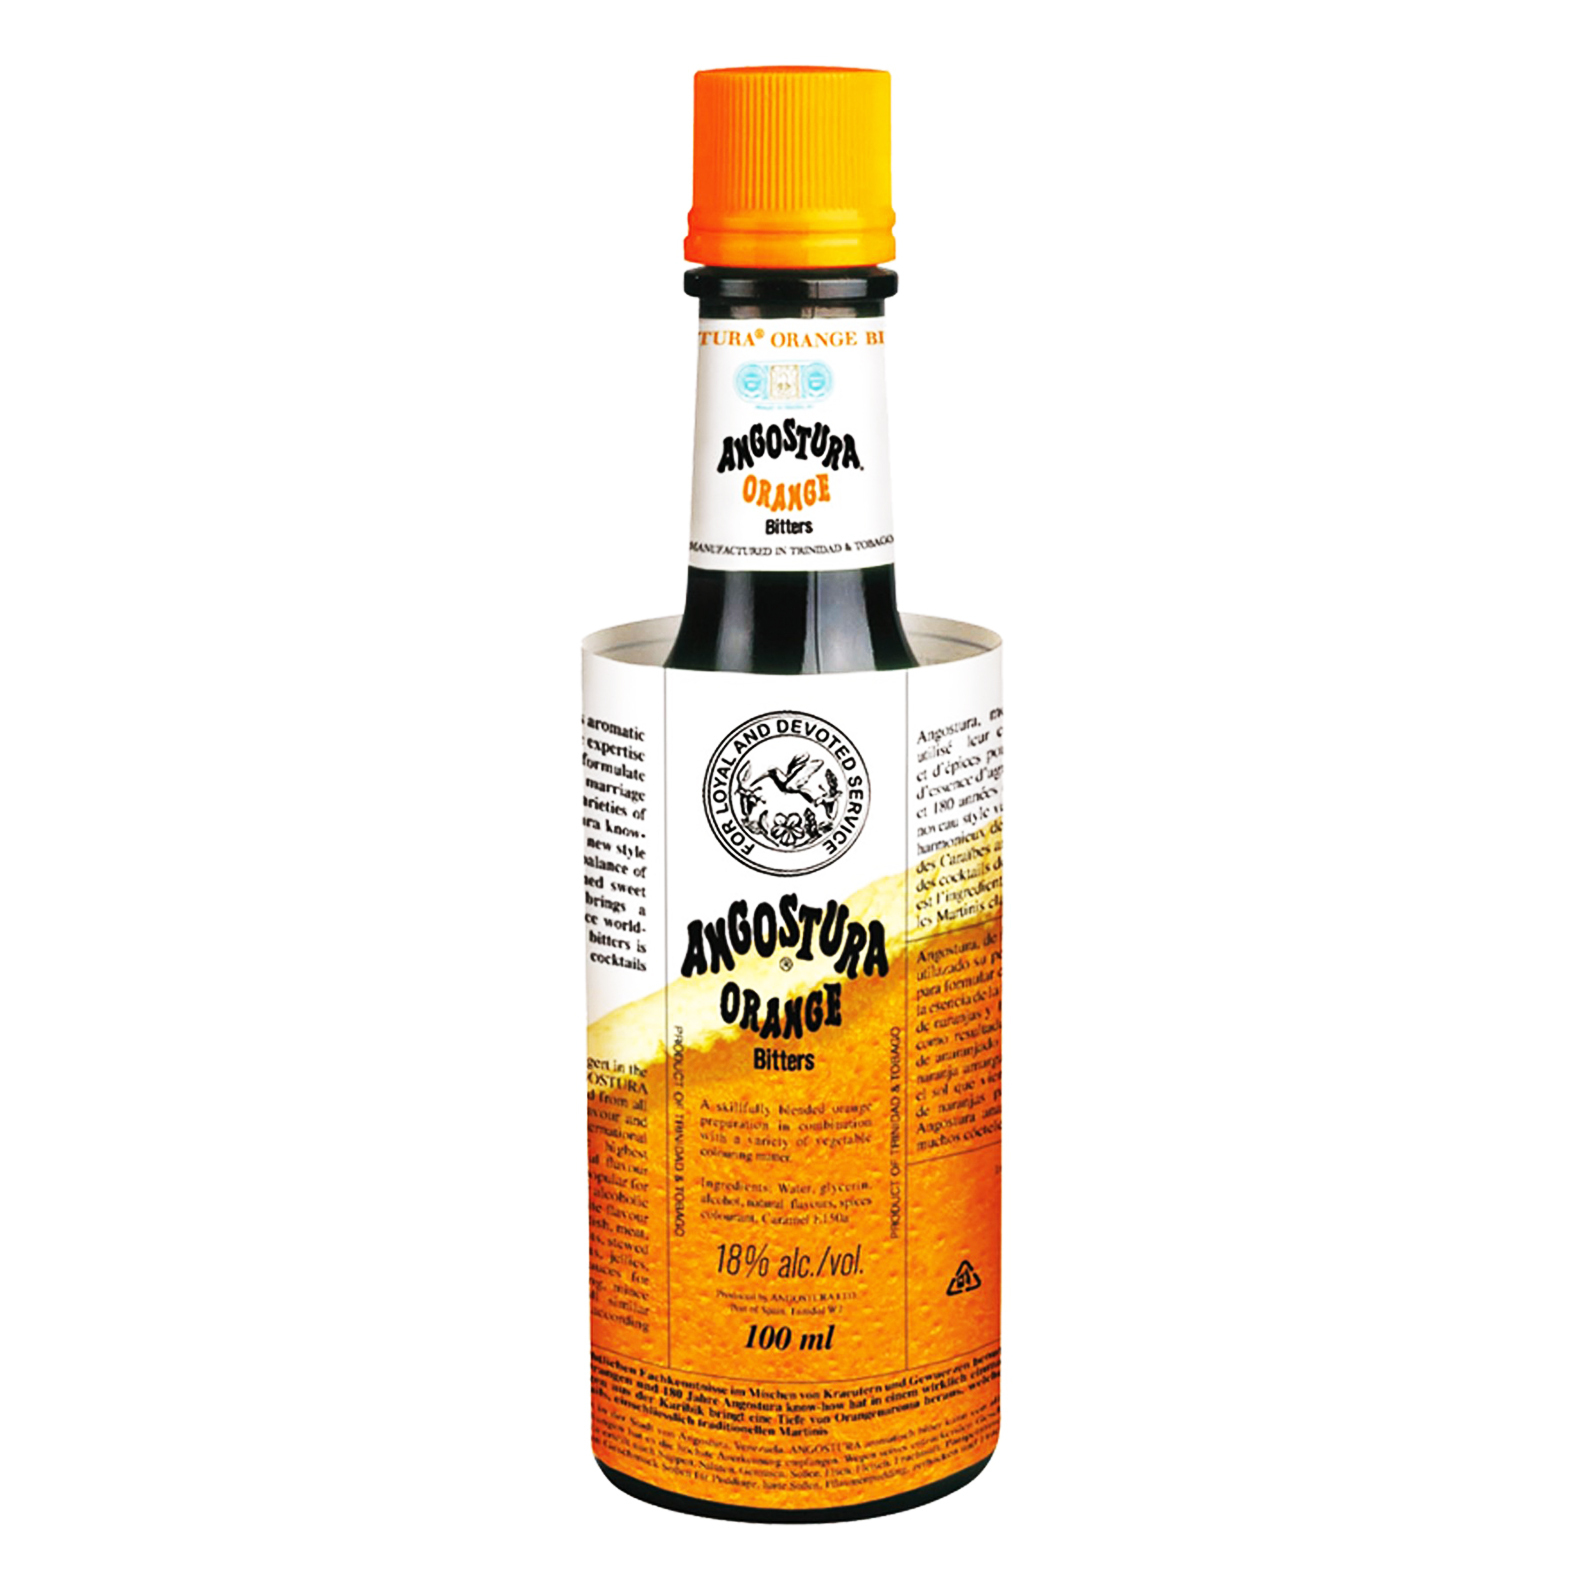 Angostura Orange Aromatic Bitters - Bitter Aromatico - 10cl - Angostura Ltd.